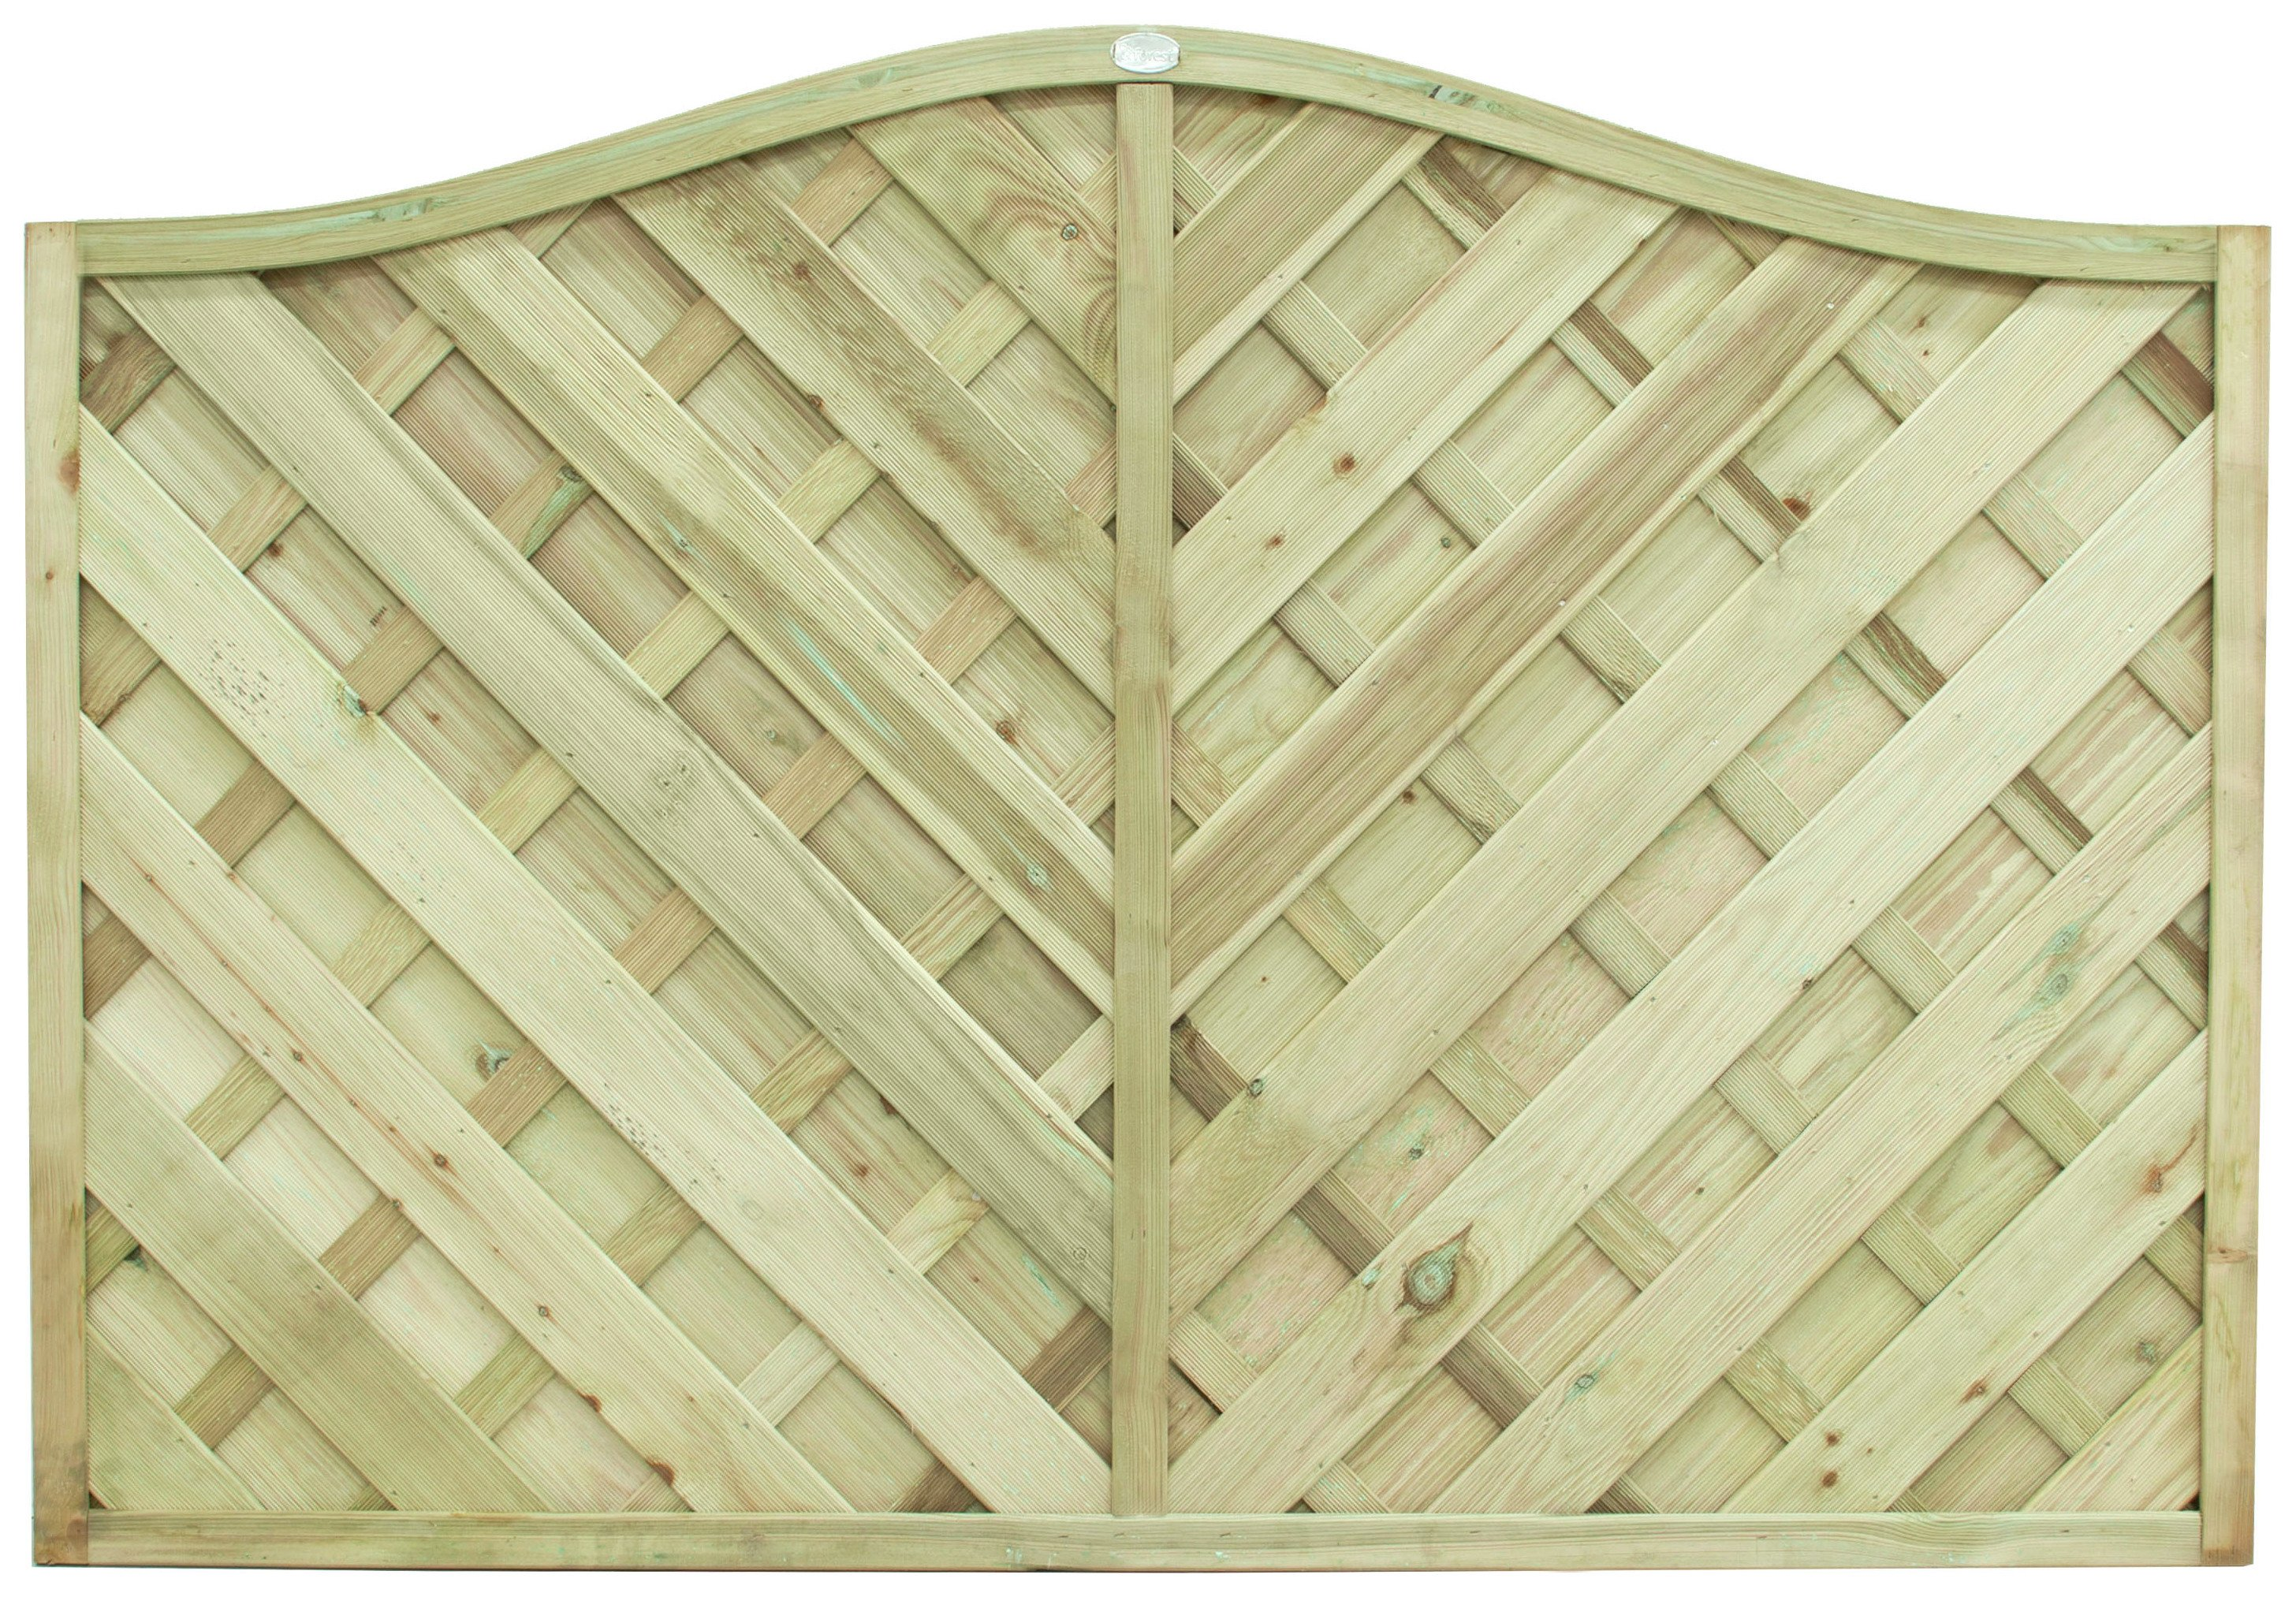 Forest 1.8m Strasburg Fence Panel - Pack of 5. lowest price